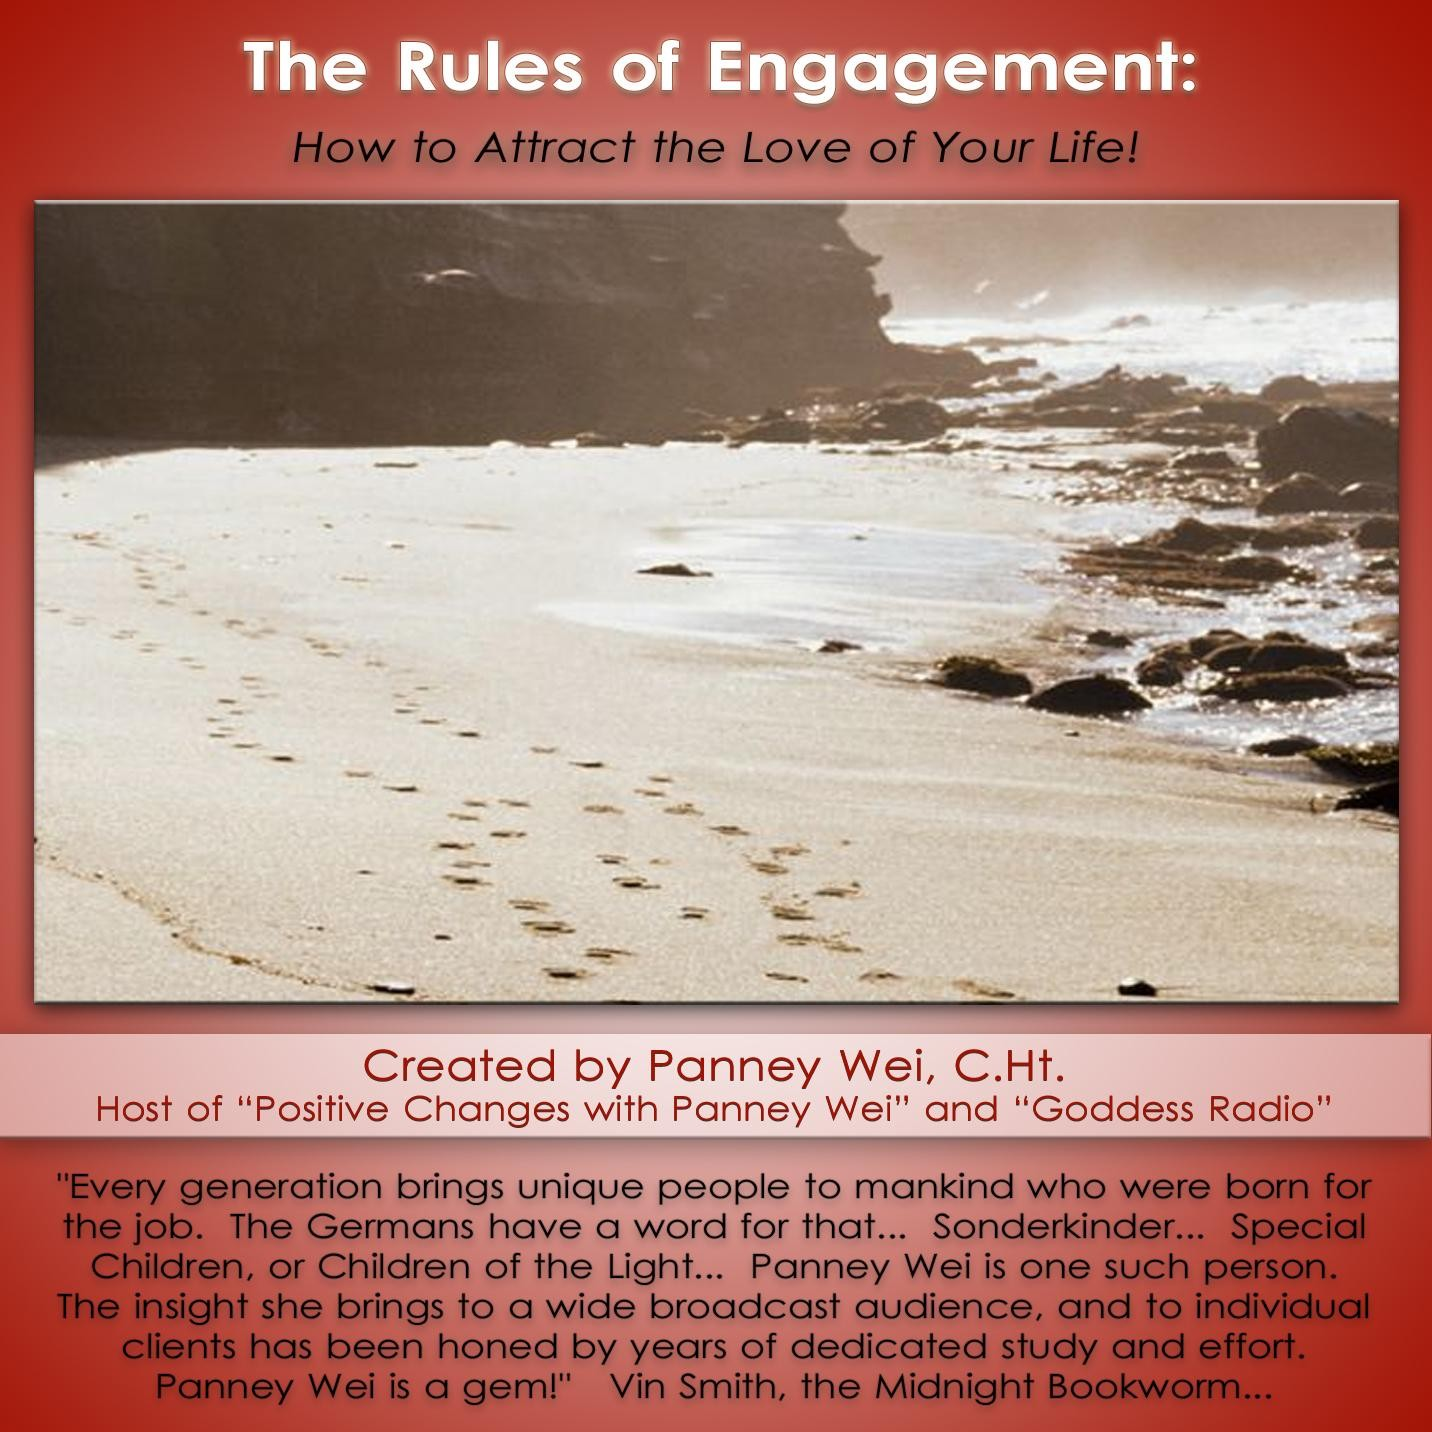 The Rules of Engagement: How to Attract the Love Of Your Life